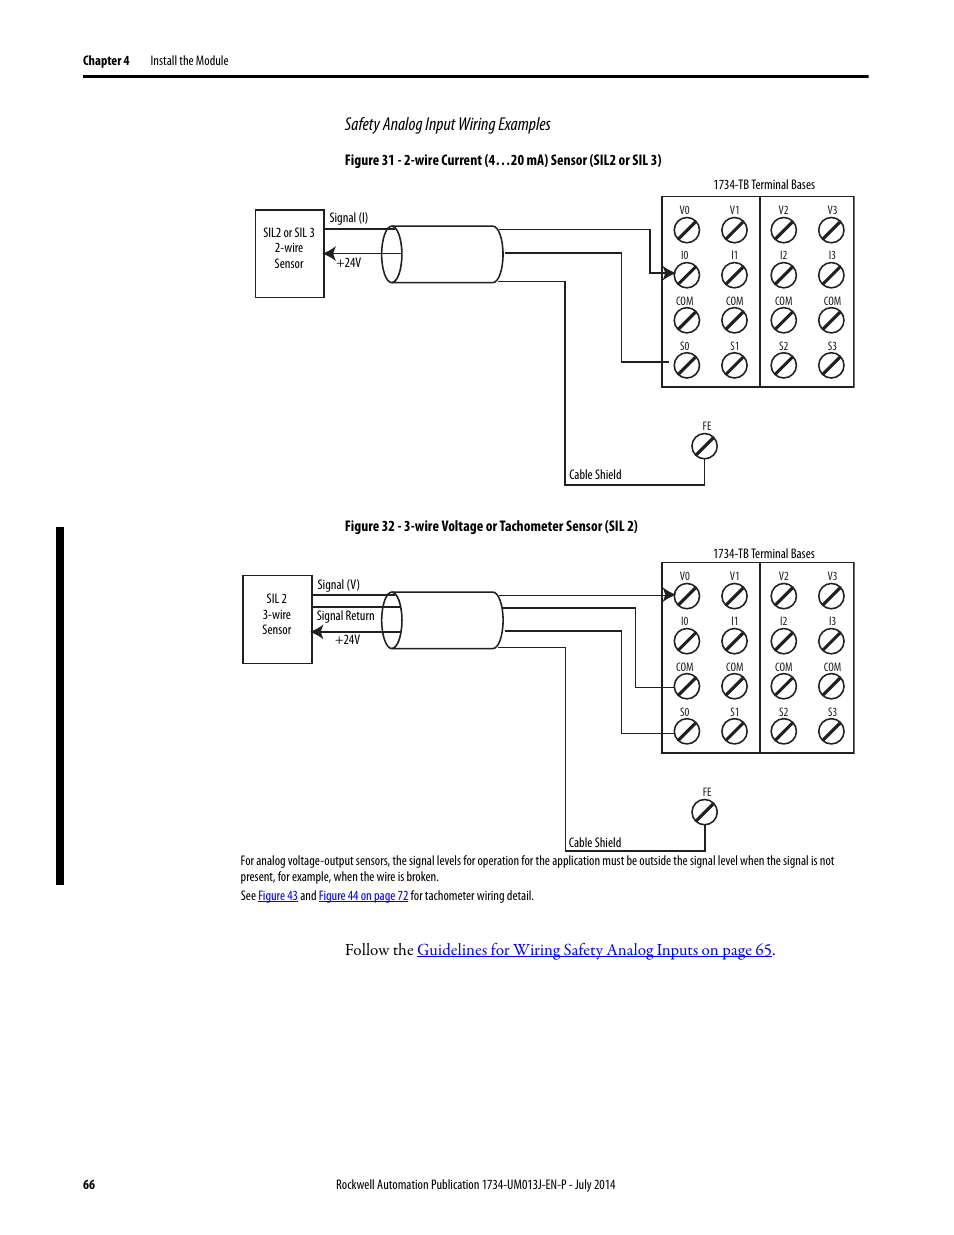 Safety Analog Input Wiring Examples Rockwell Automation 1734 Ie4s 2wire Diagram Tachometer Point Guard I O Modules User Manual Page 66 212